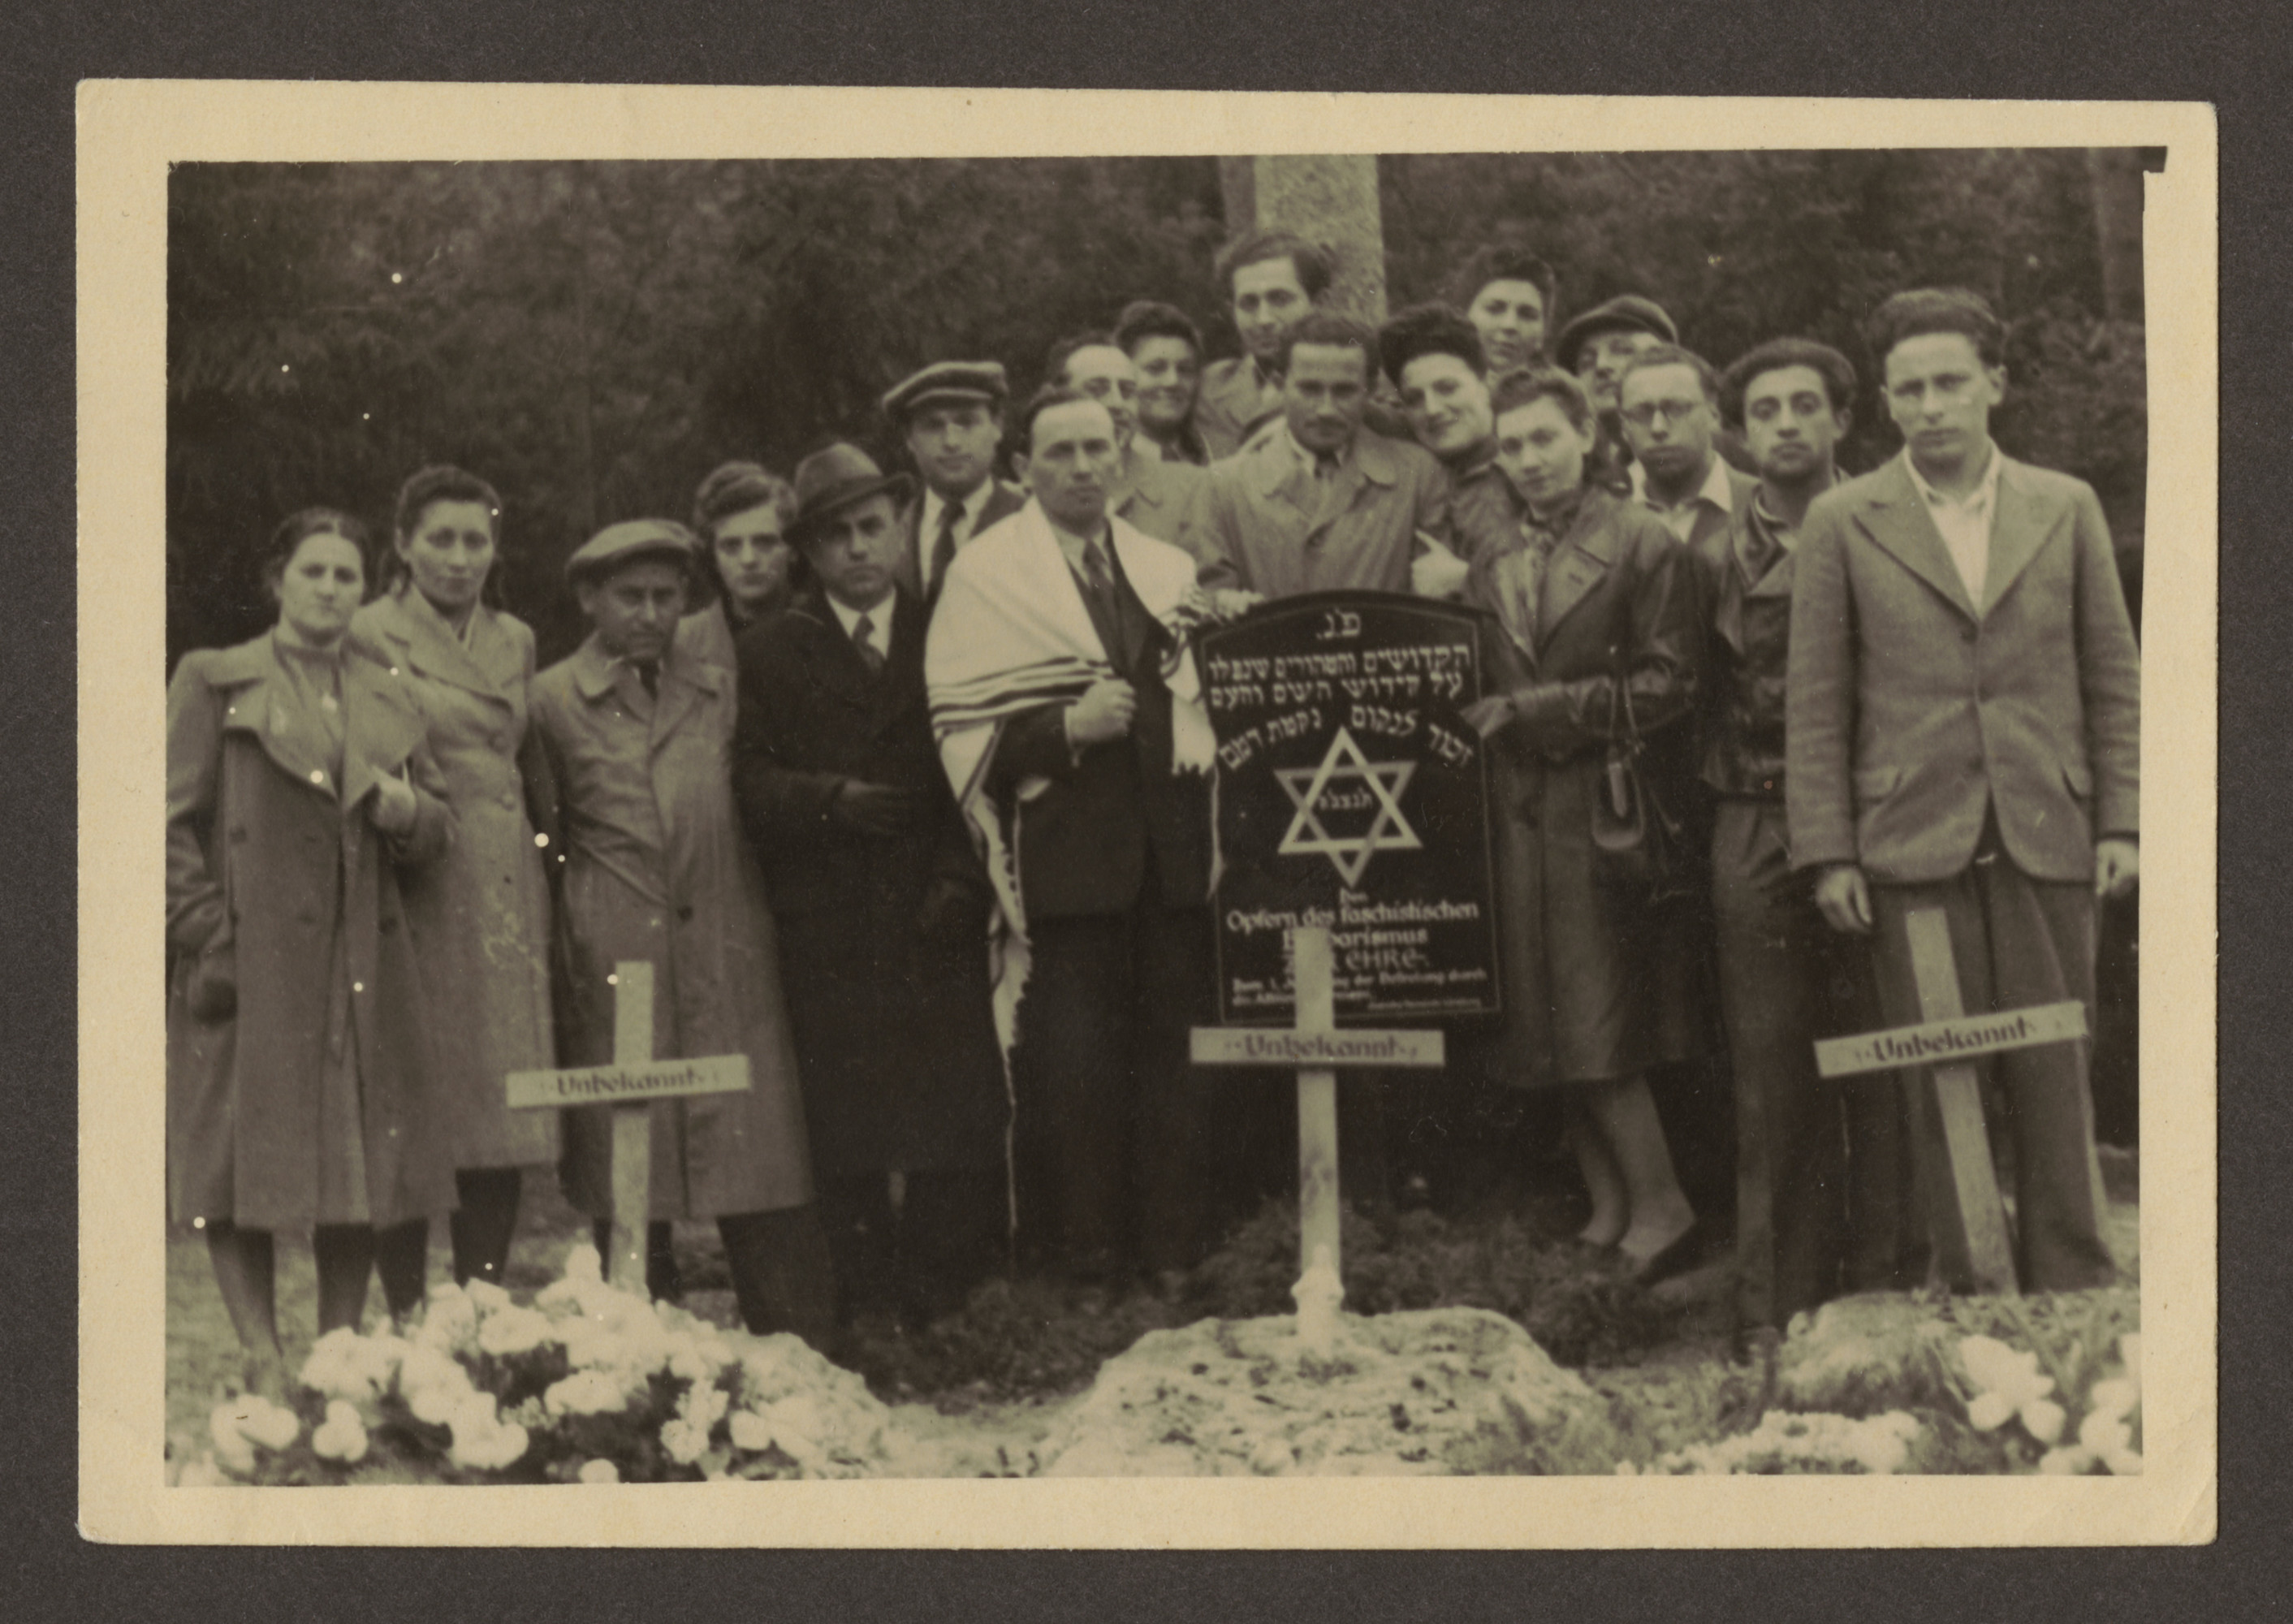 Jewish survivors gather for a memorial service by the site of a mass grave in an unidentified locale.